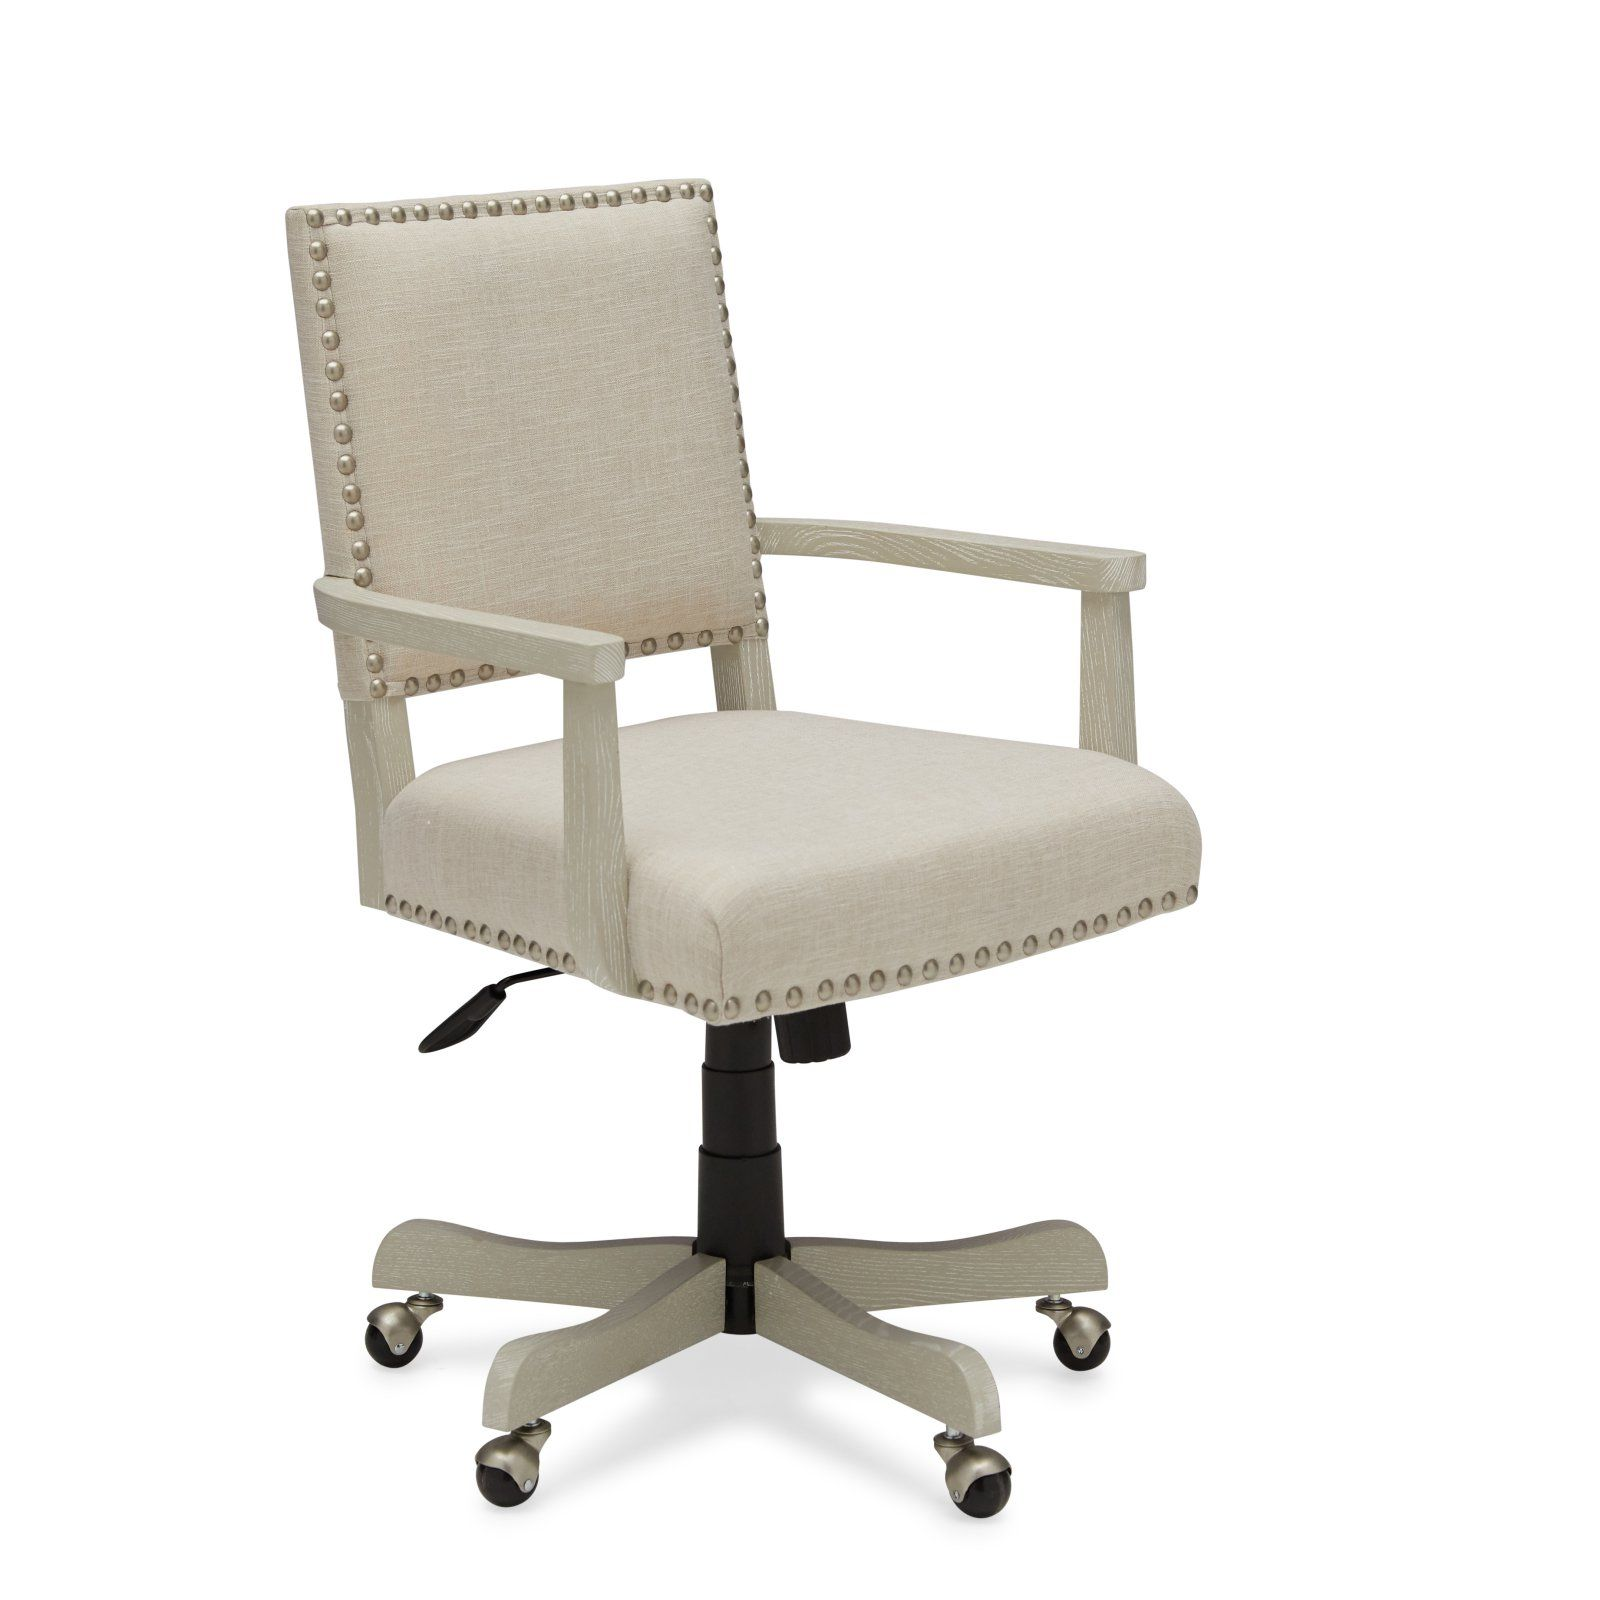 Belham Living Prescott Task Chair in 2020 Task chair